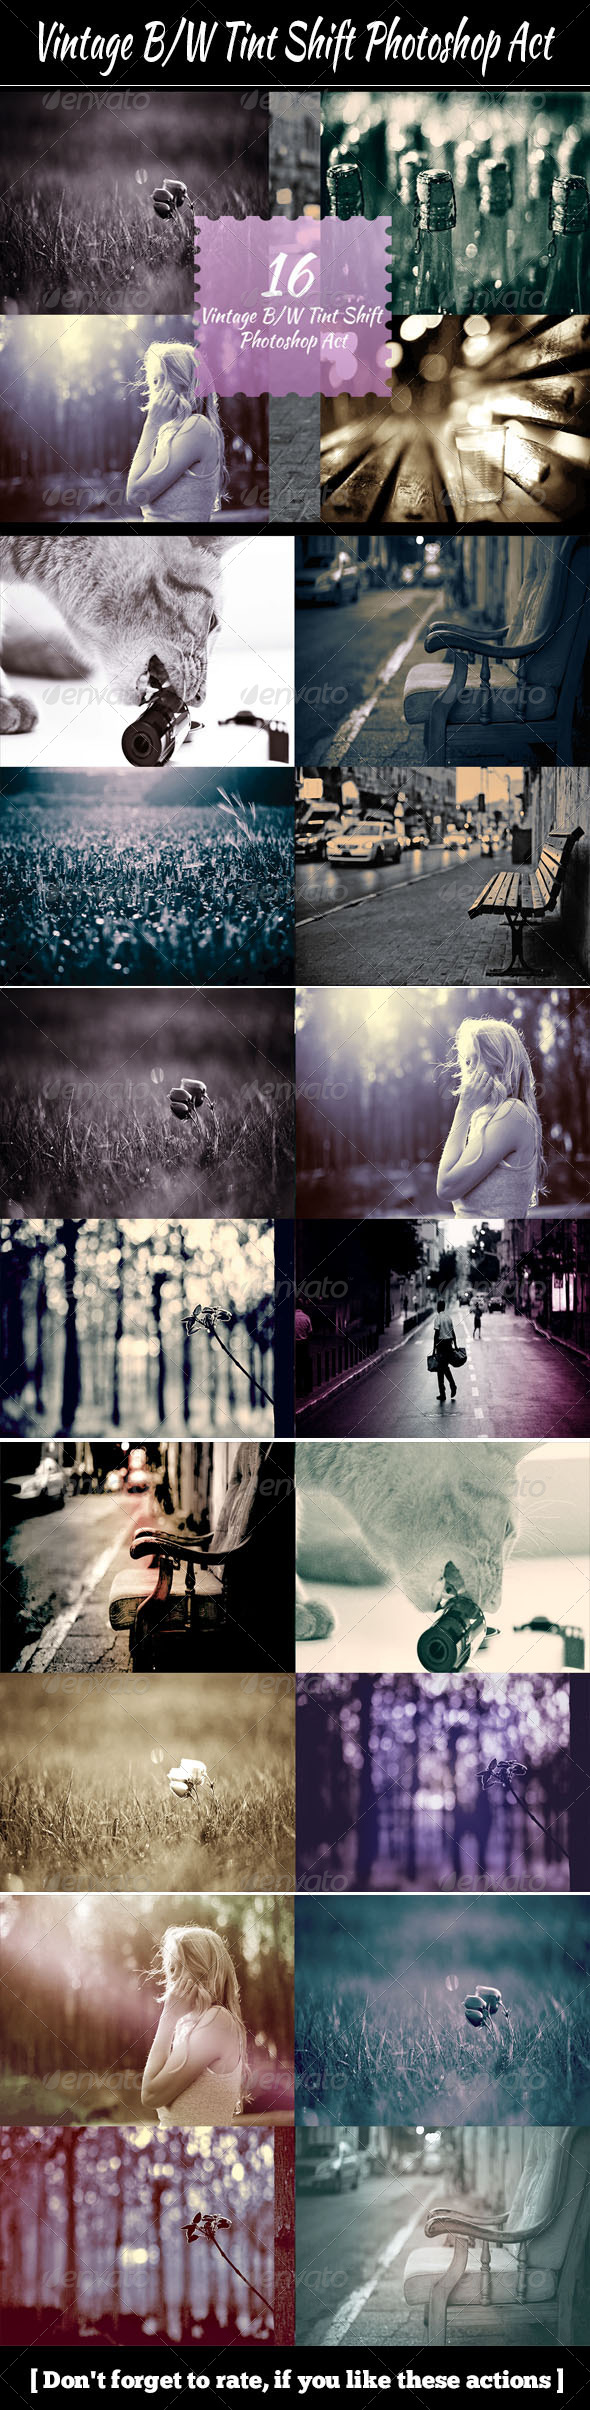 GraphicRiver Vintage B&W Tint Shift Photoshop Act 5596702